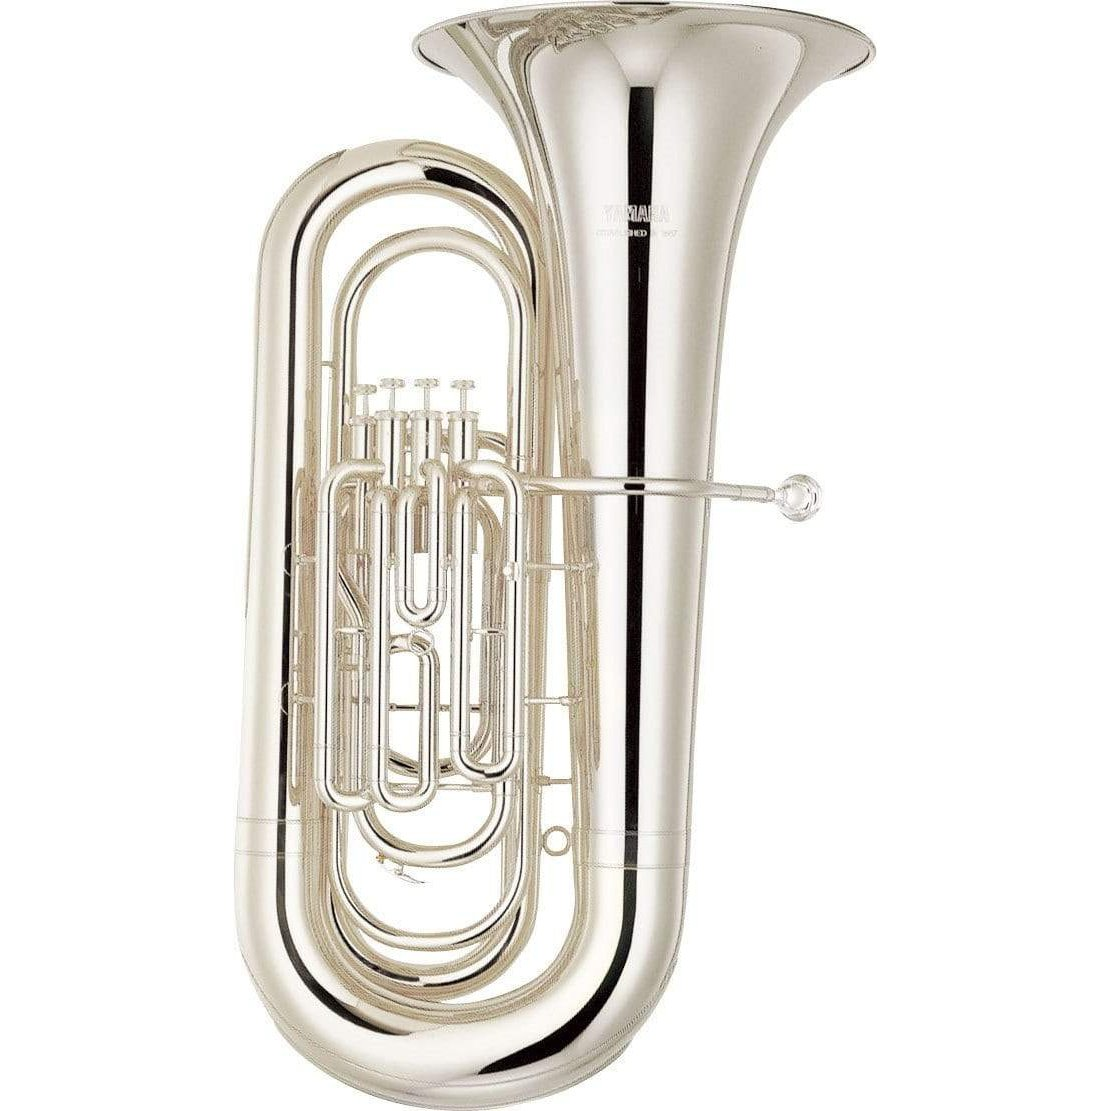 Yamaha - YBB-321S - Intermediate BBb Tuba-Tuba-Yamaha-Music Elements